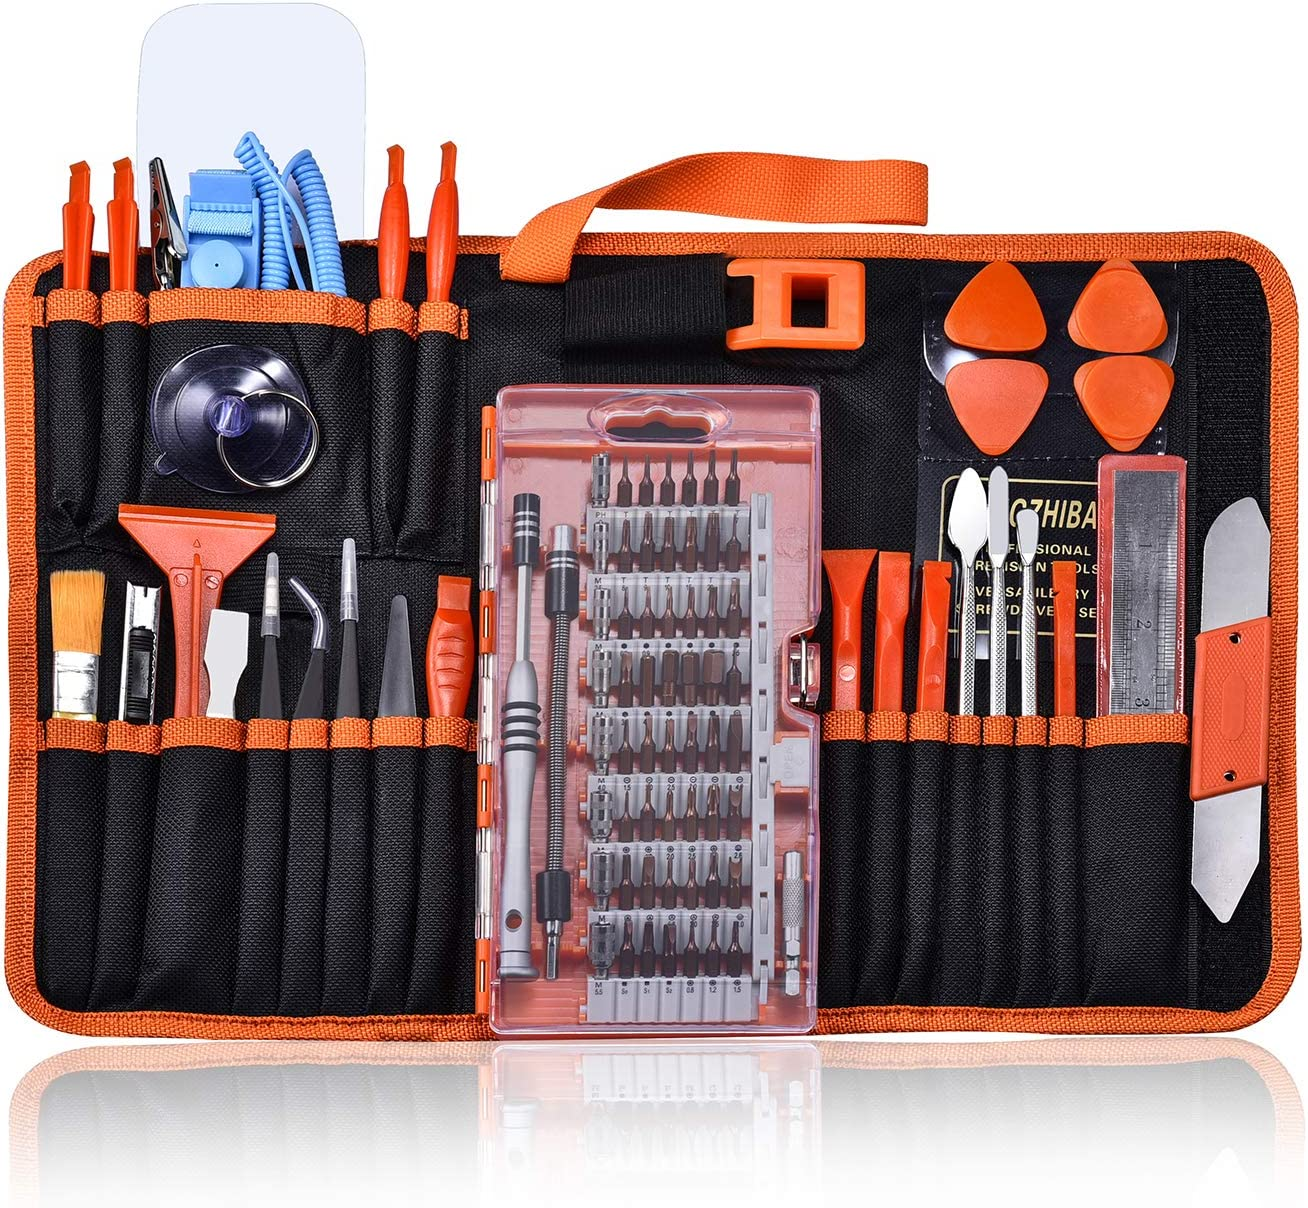 16 in 1 Precision Screwdriver Set Magnetic Screwdriver Set Torx Star Phillips Magnetic Repair Phone Tools Christmas Best Gifts Screwdriver Sets